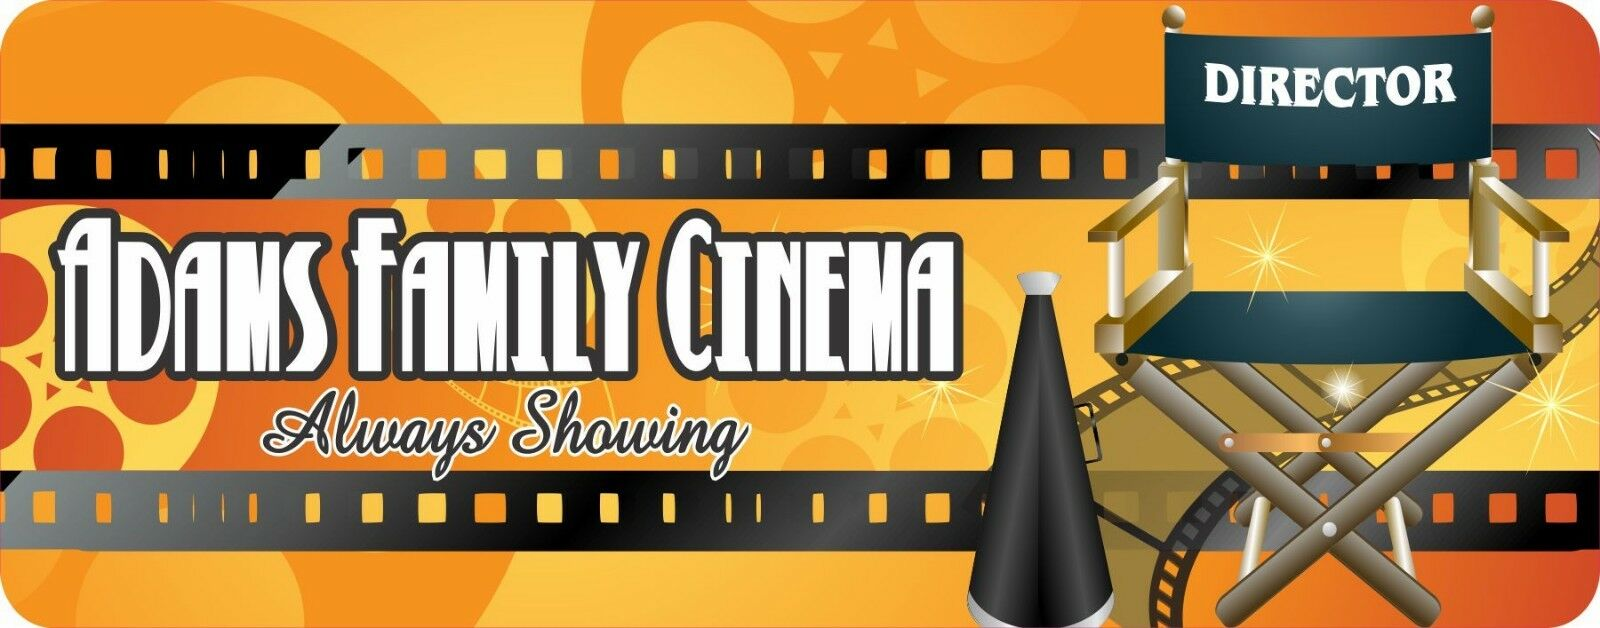 PERSONALIZED HOME MOVIE Theater Sign Movie Director Cinema Wall Art ...